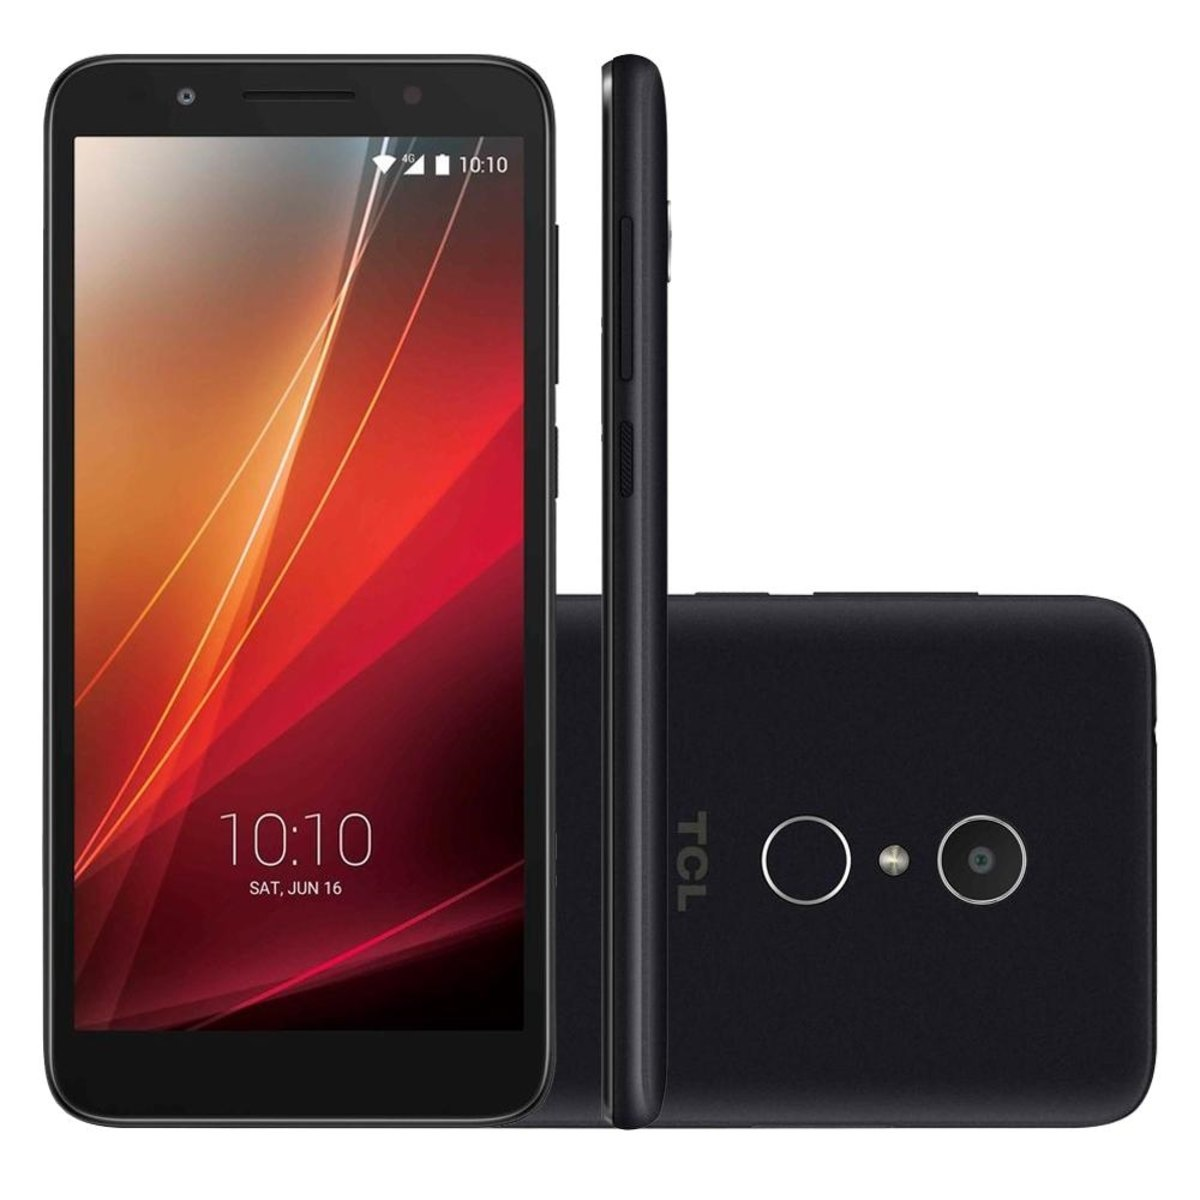 Smartphone Tcl L9 Plus Preto, 5.5 4g+wifi Android Pie 8mp 5101J